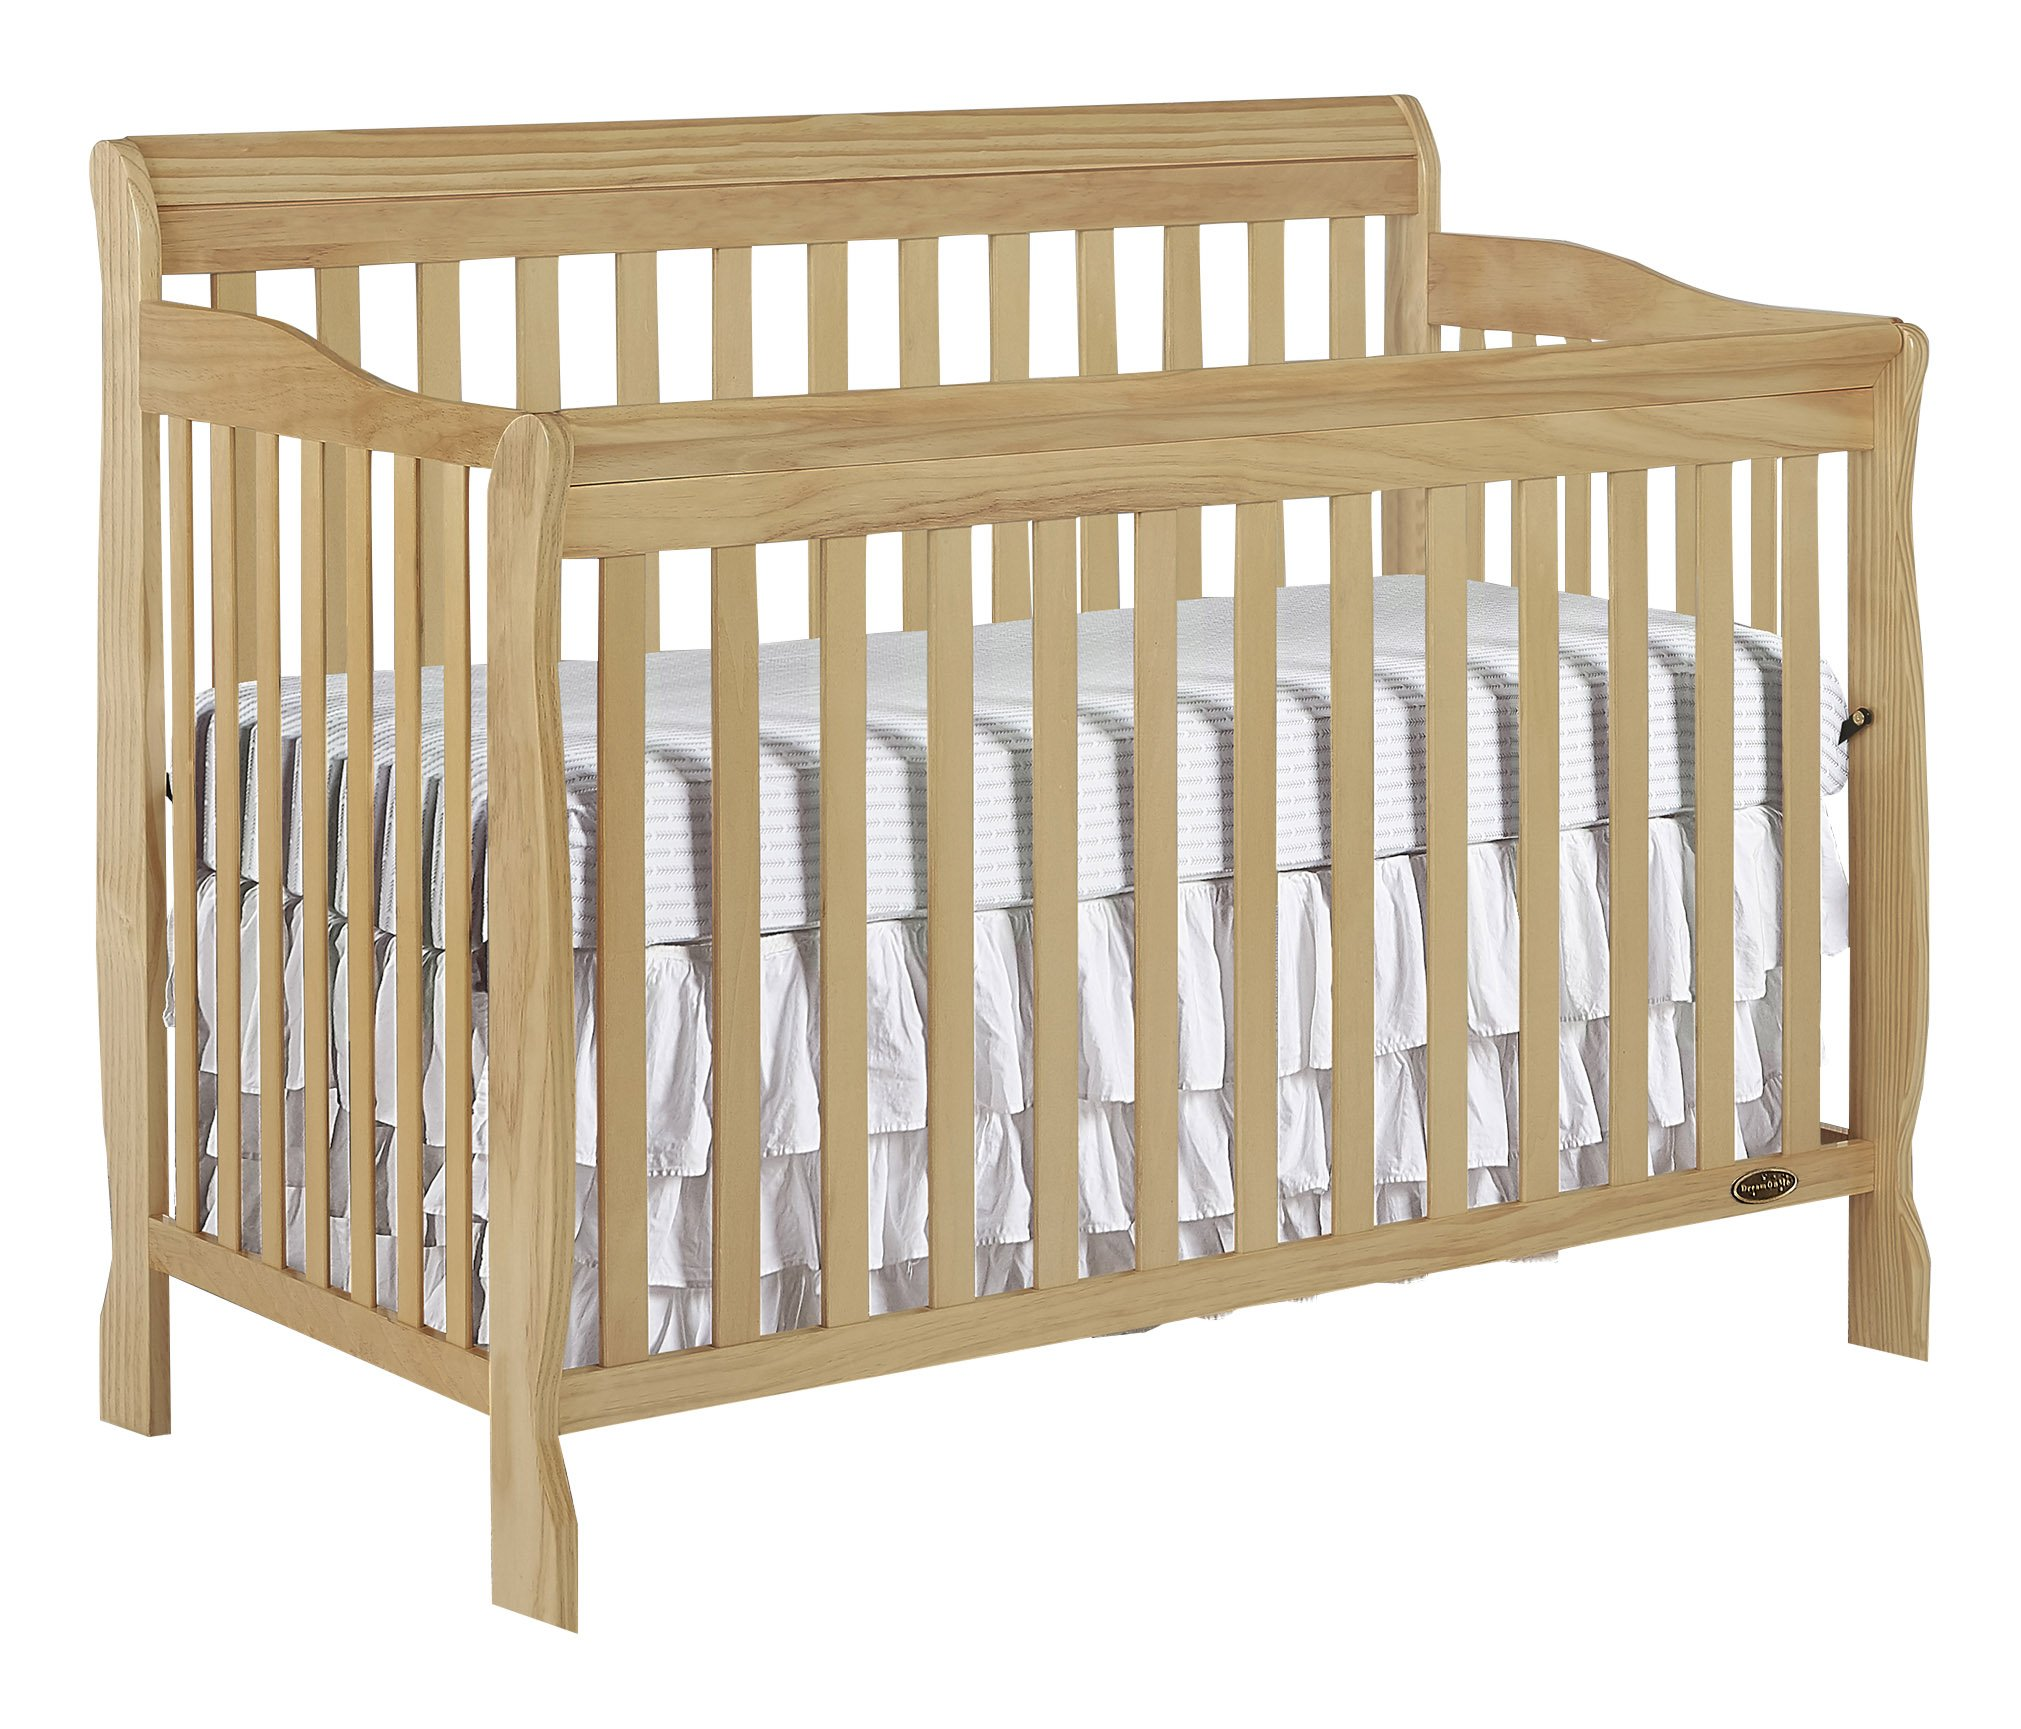 Dream On Me Ashton 5 in 1 Convertible Crib, Natural by Dream On Me (Image #1)